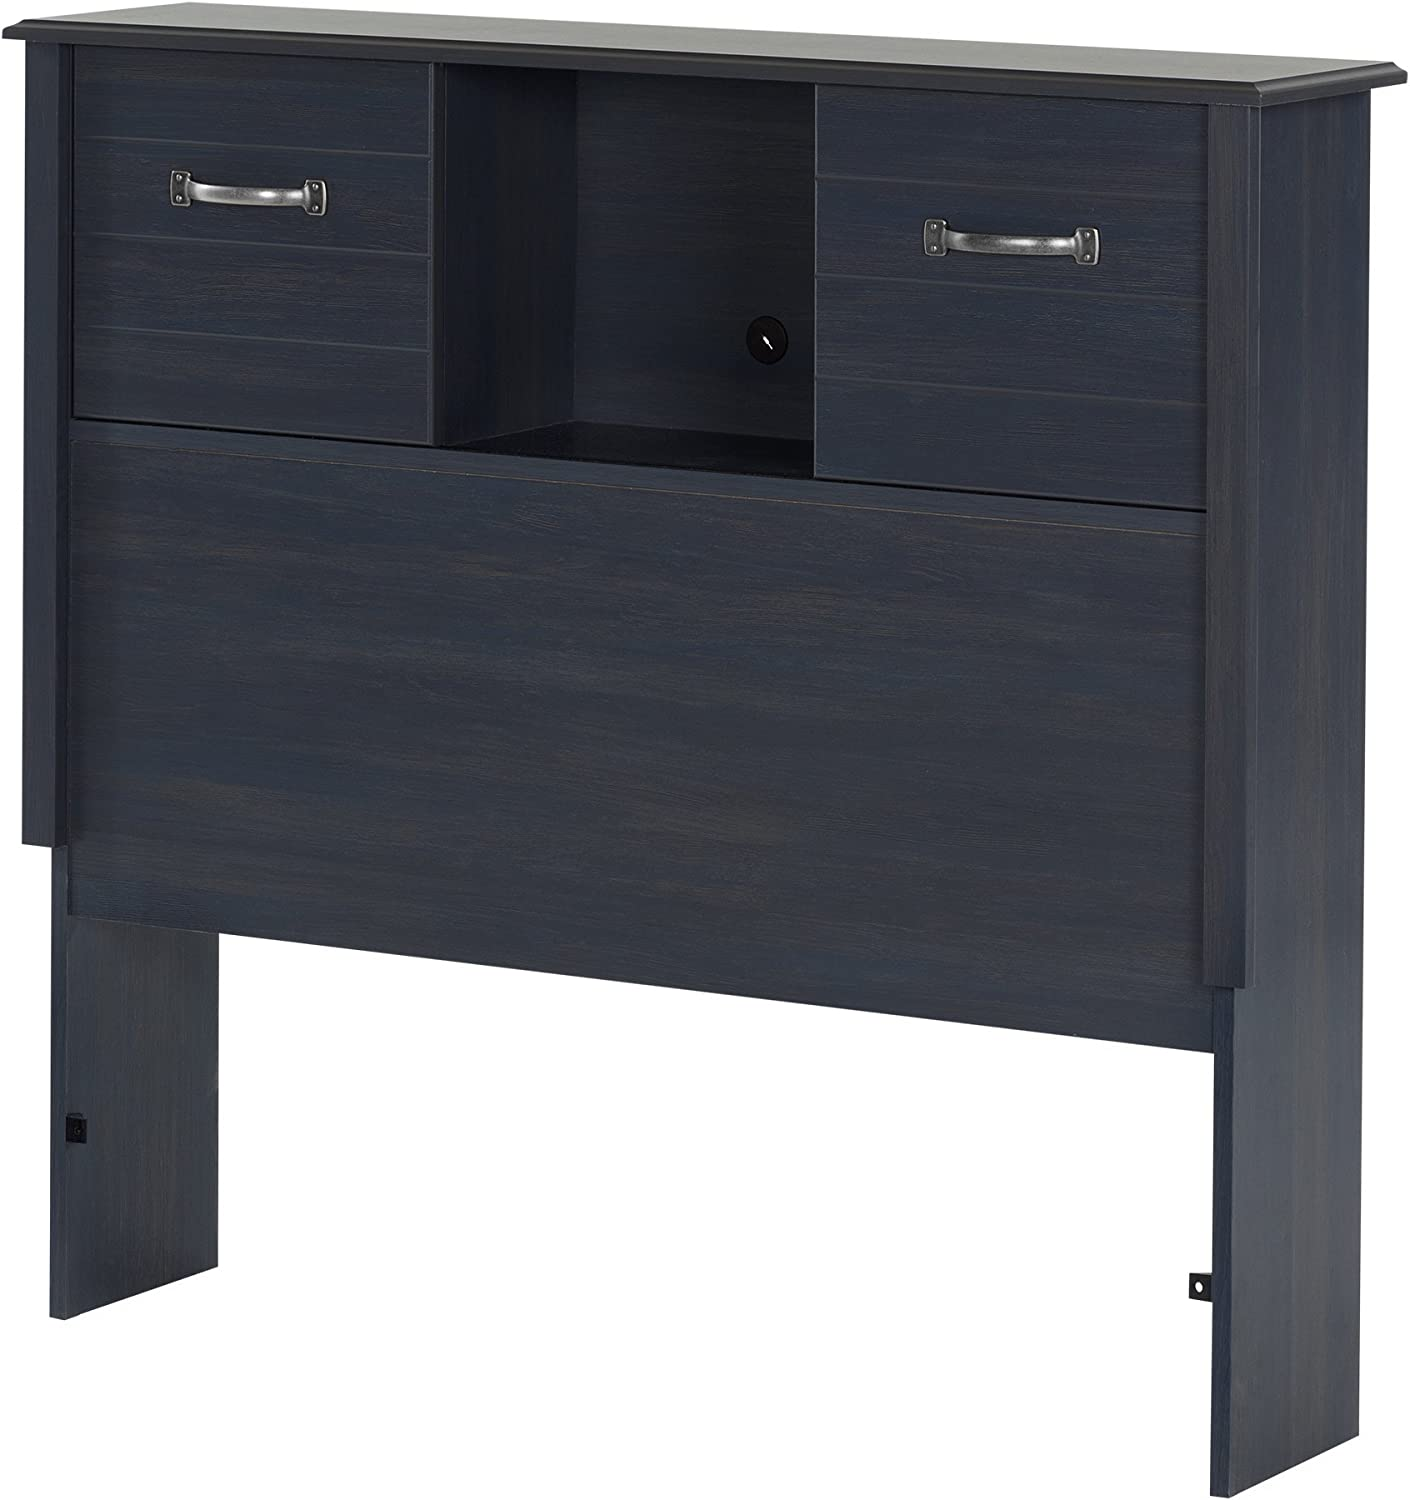 South Shore Furniture Ulysses Twin Bookcase Headboard (39-Inches) with Sliding Doors, blueeberry